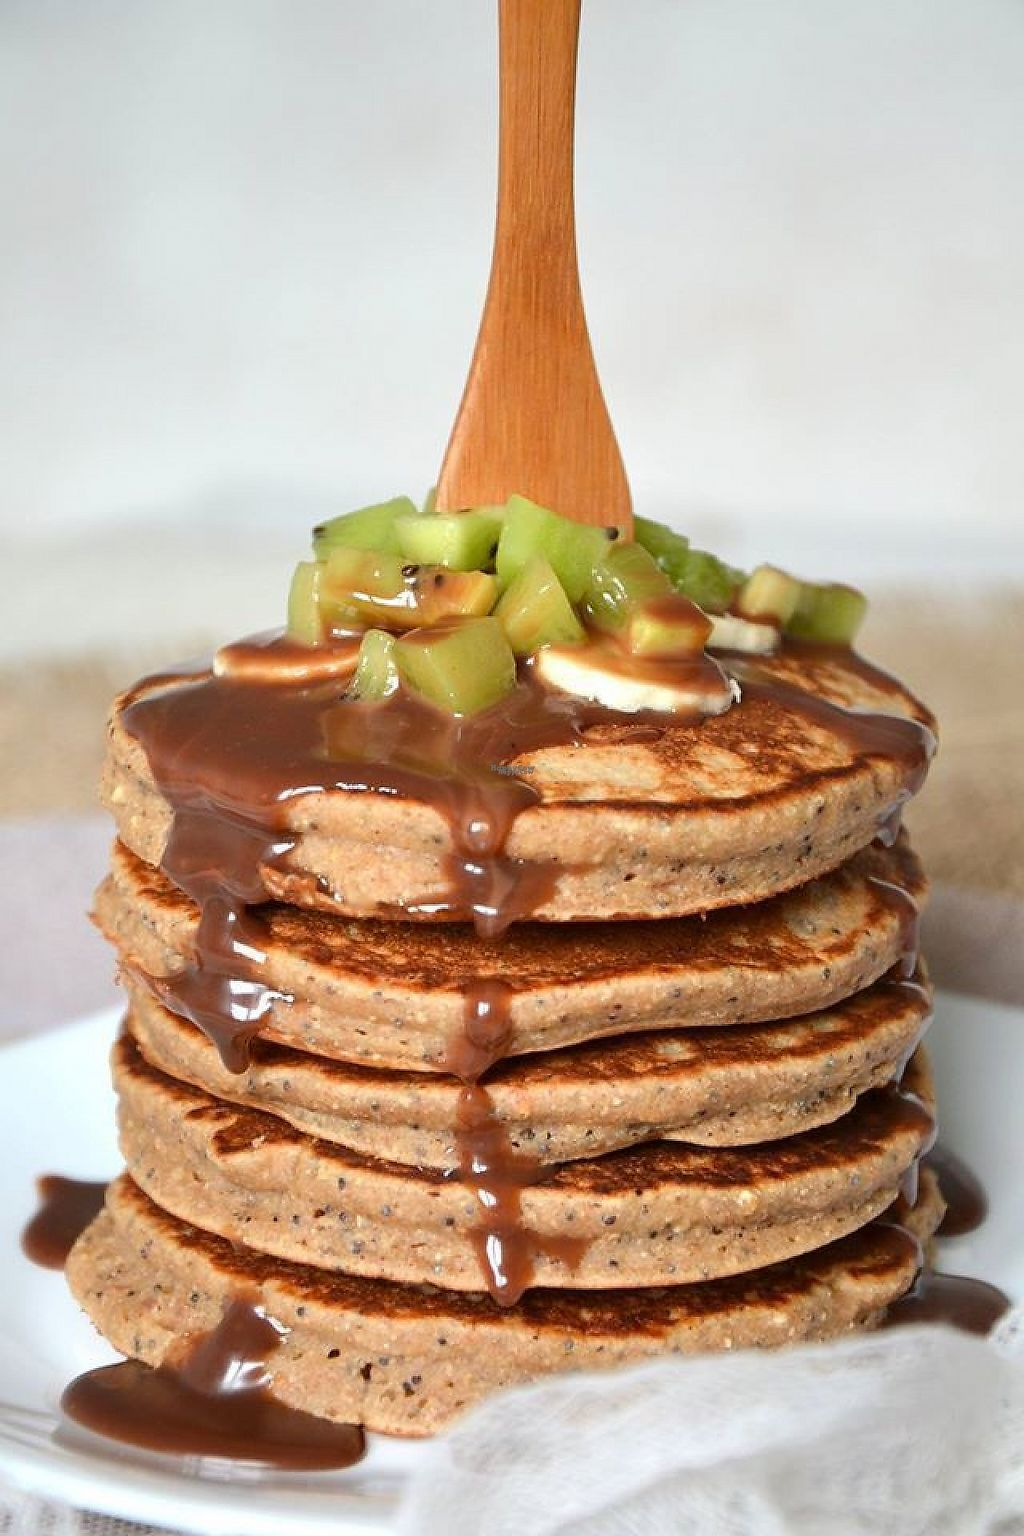 "Photo of La Vie Claire  by <a href=""/members/profile/community"">community</a> <br/>vegan pancakes  <br/> February 4, 2017  - <a href='/contact/abuse/image/68795/221839'>Report</a>"